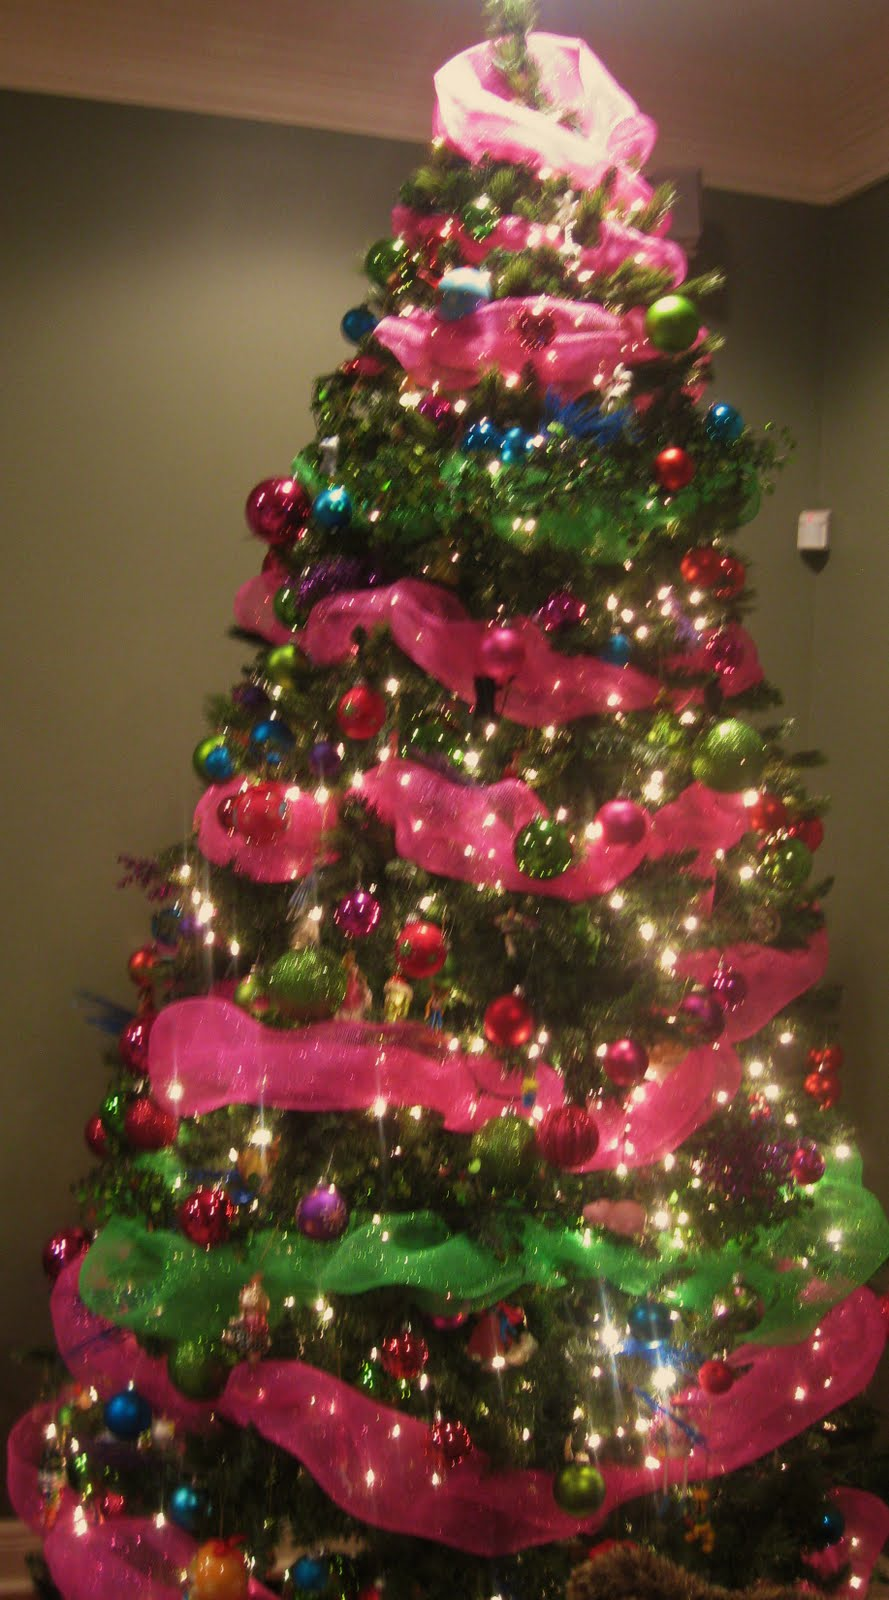 pink and green christmas tree decorations merry christmas - Red And Green Christmas Tree Decorations